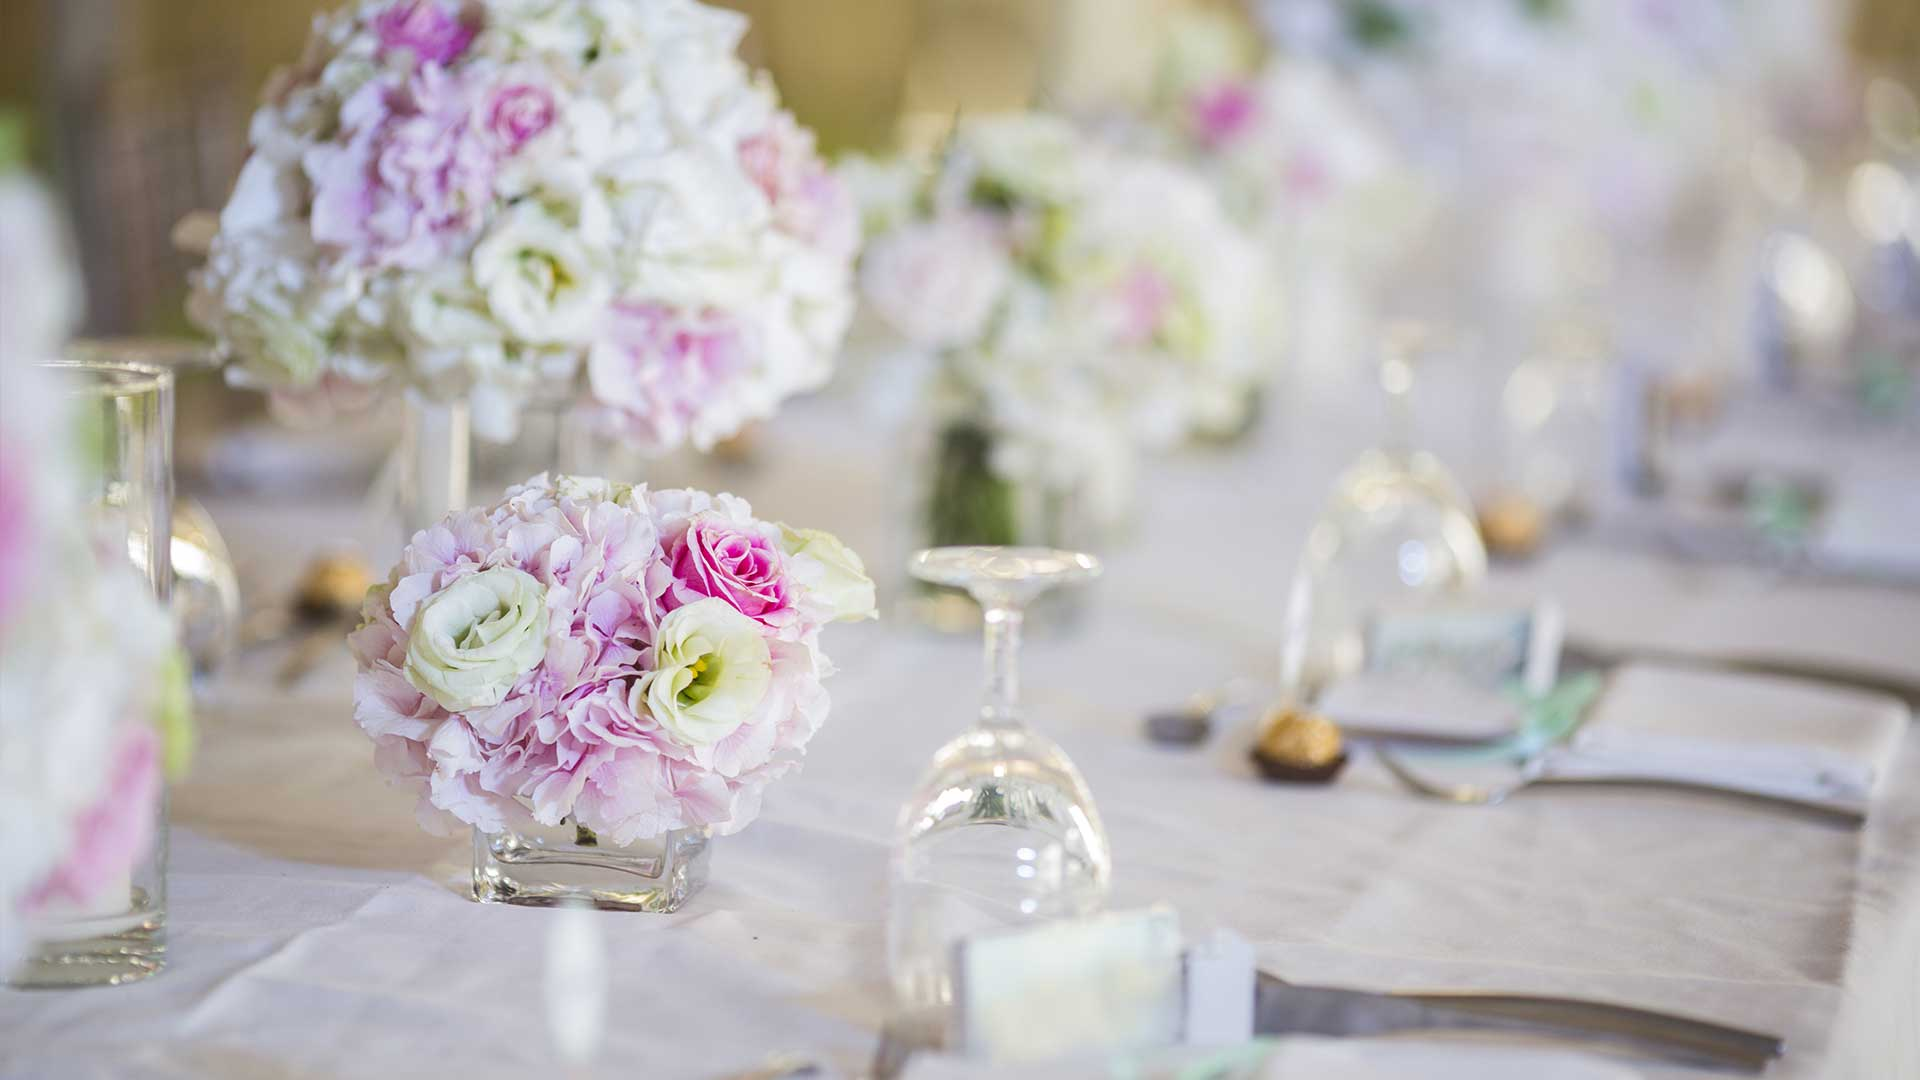 Top 4 Amazing Wedding Themes for Every Bridal Style